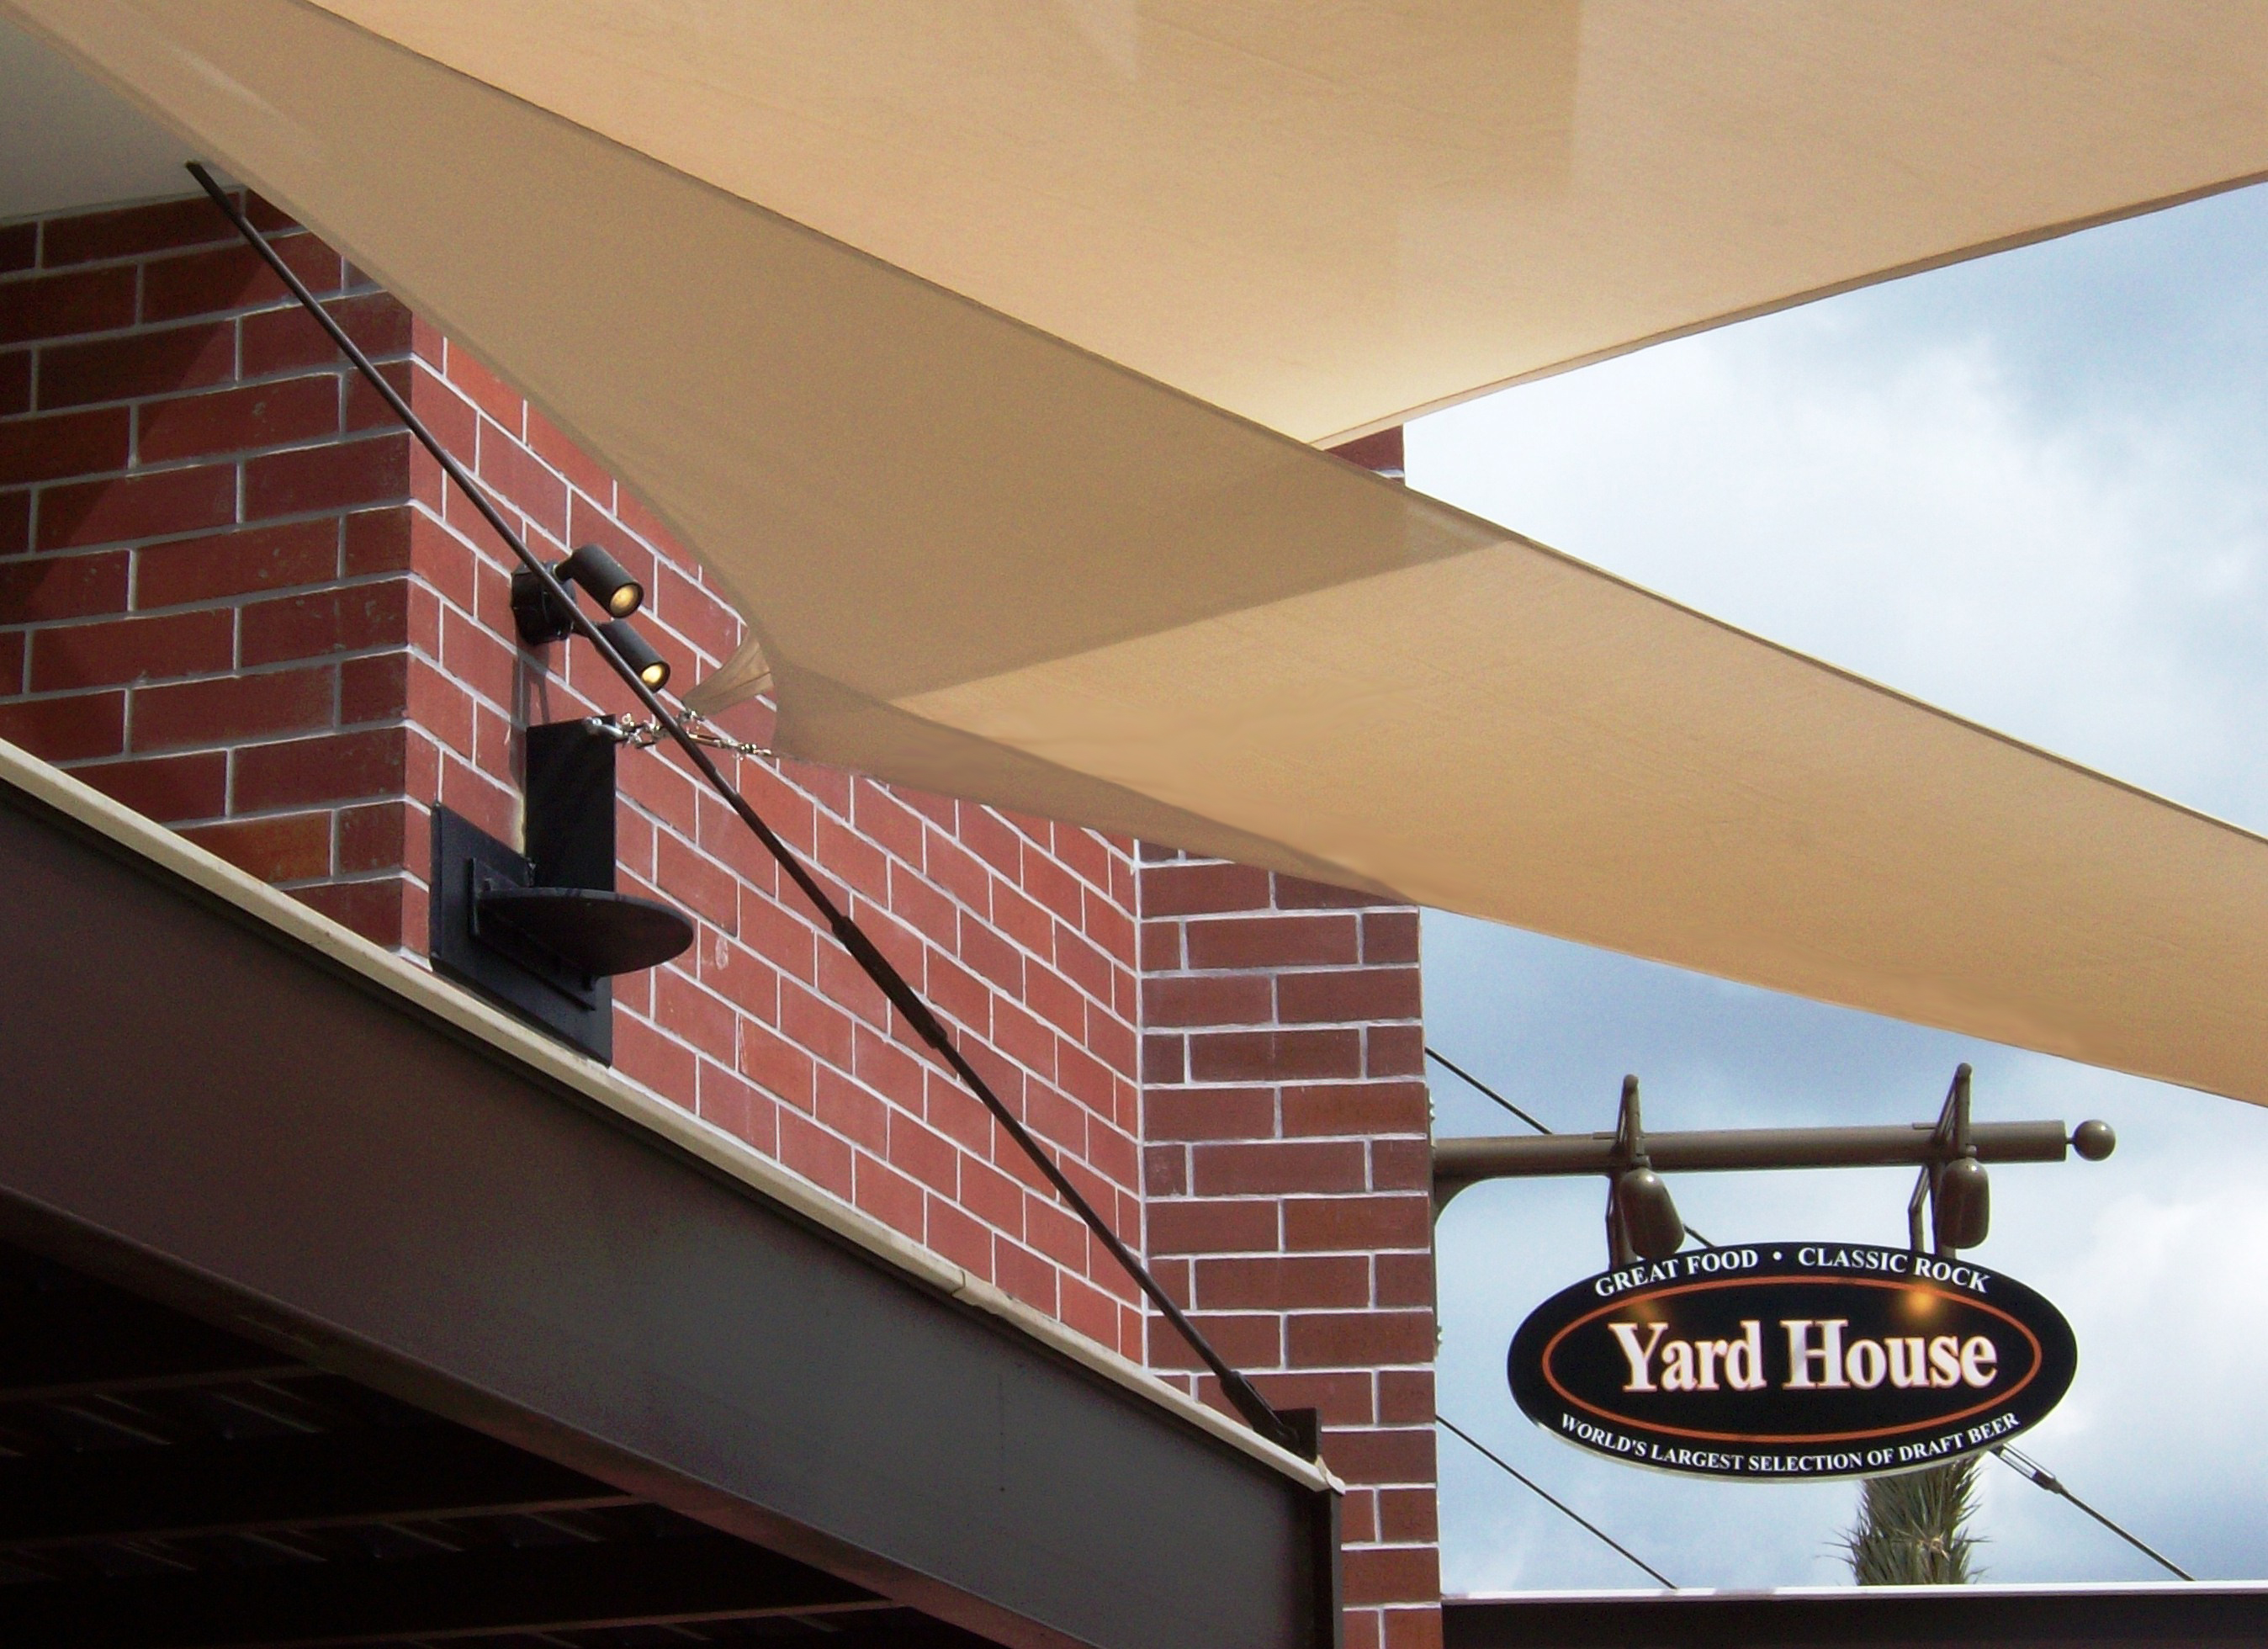 The Yard House Restaurant Temecula Ca Tension Structures